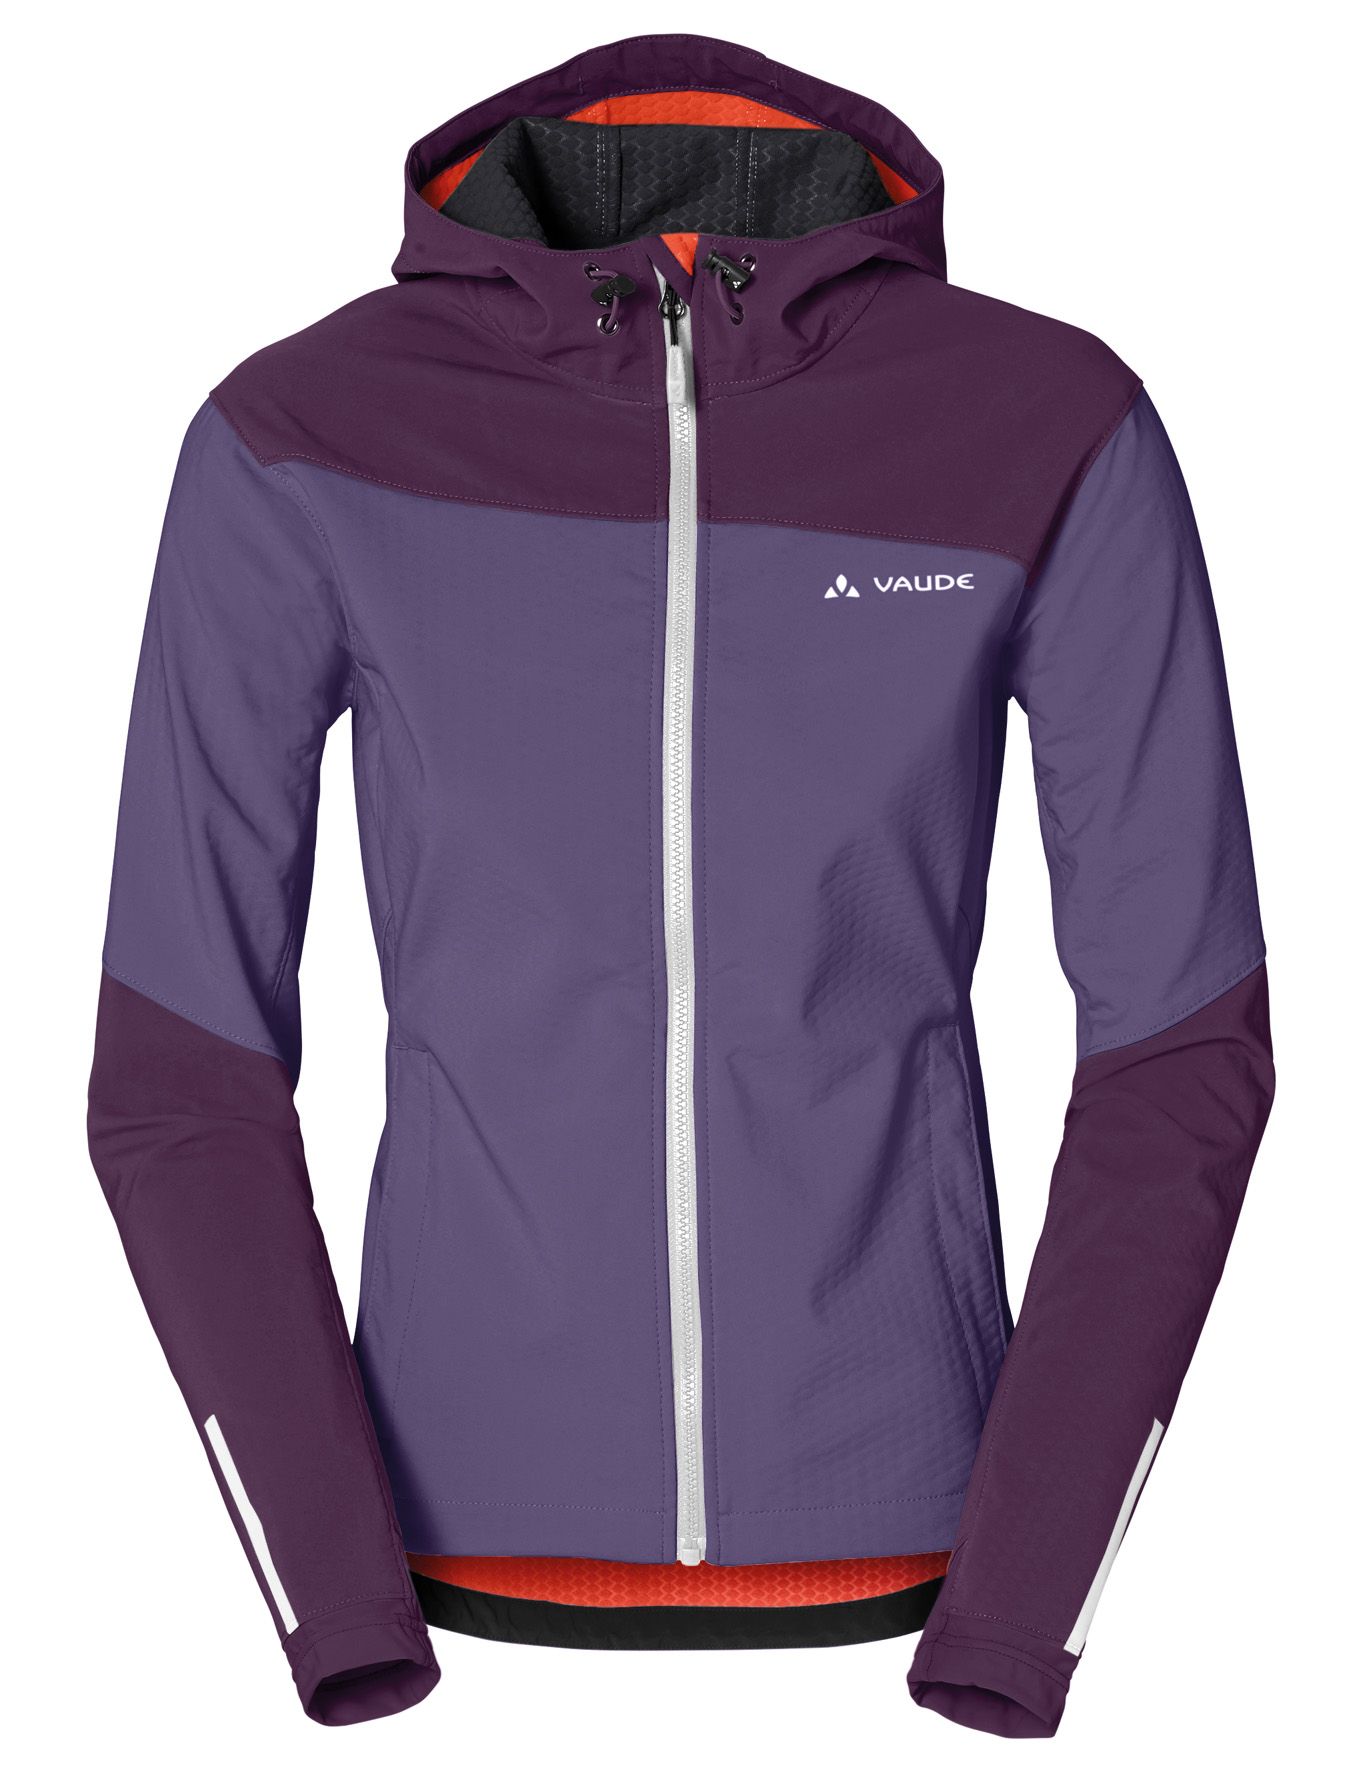 VAUDE Women´s Chiva Softshell Jacket dusty violet Größe 36 - schneider-sports